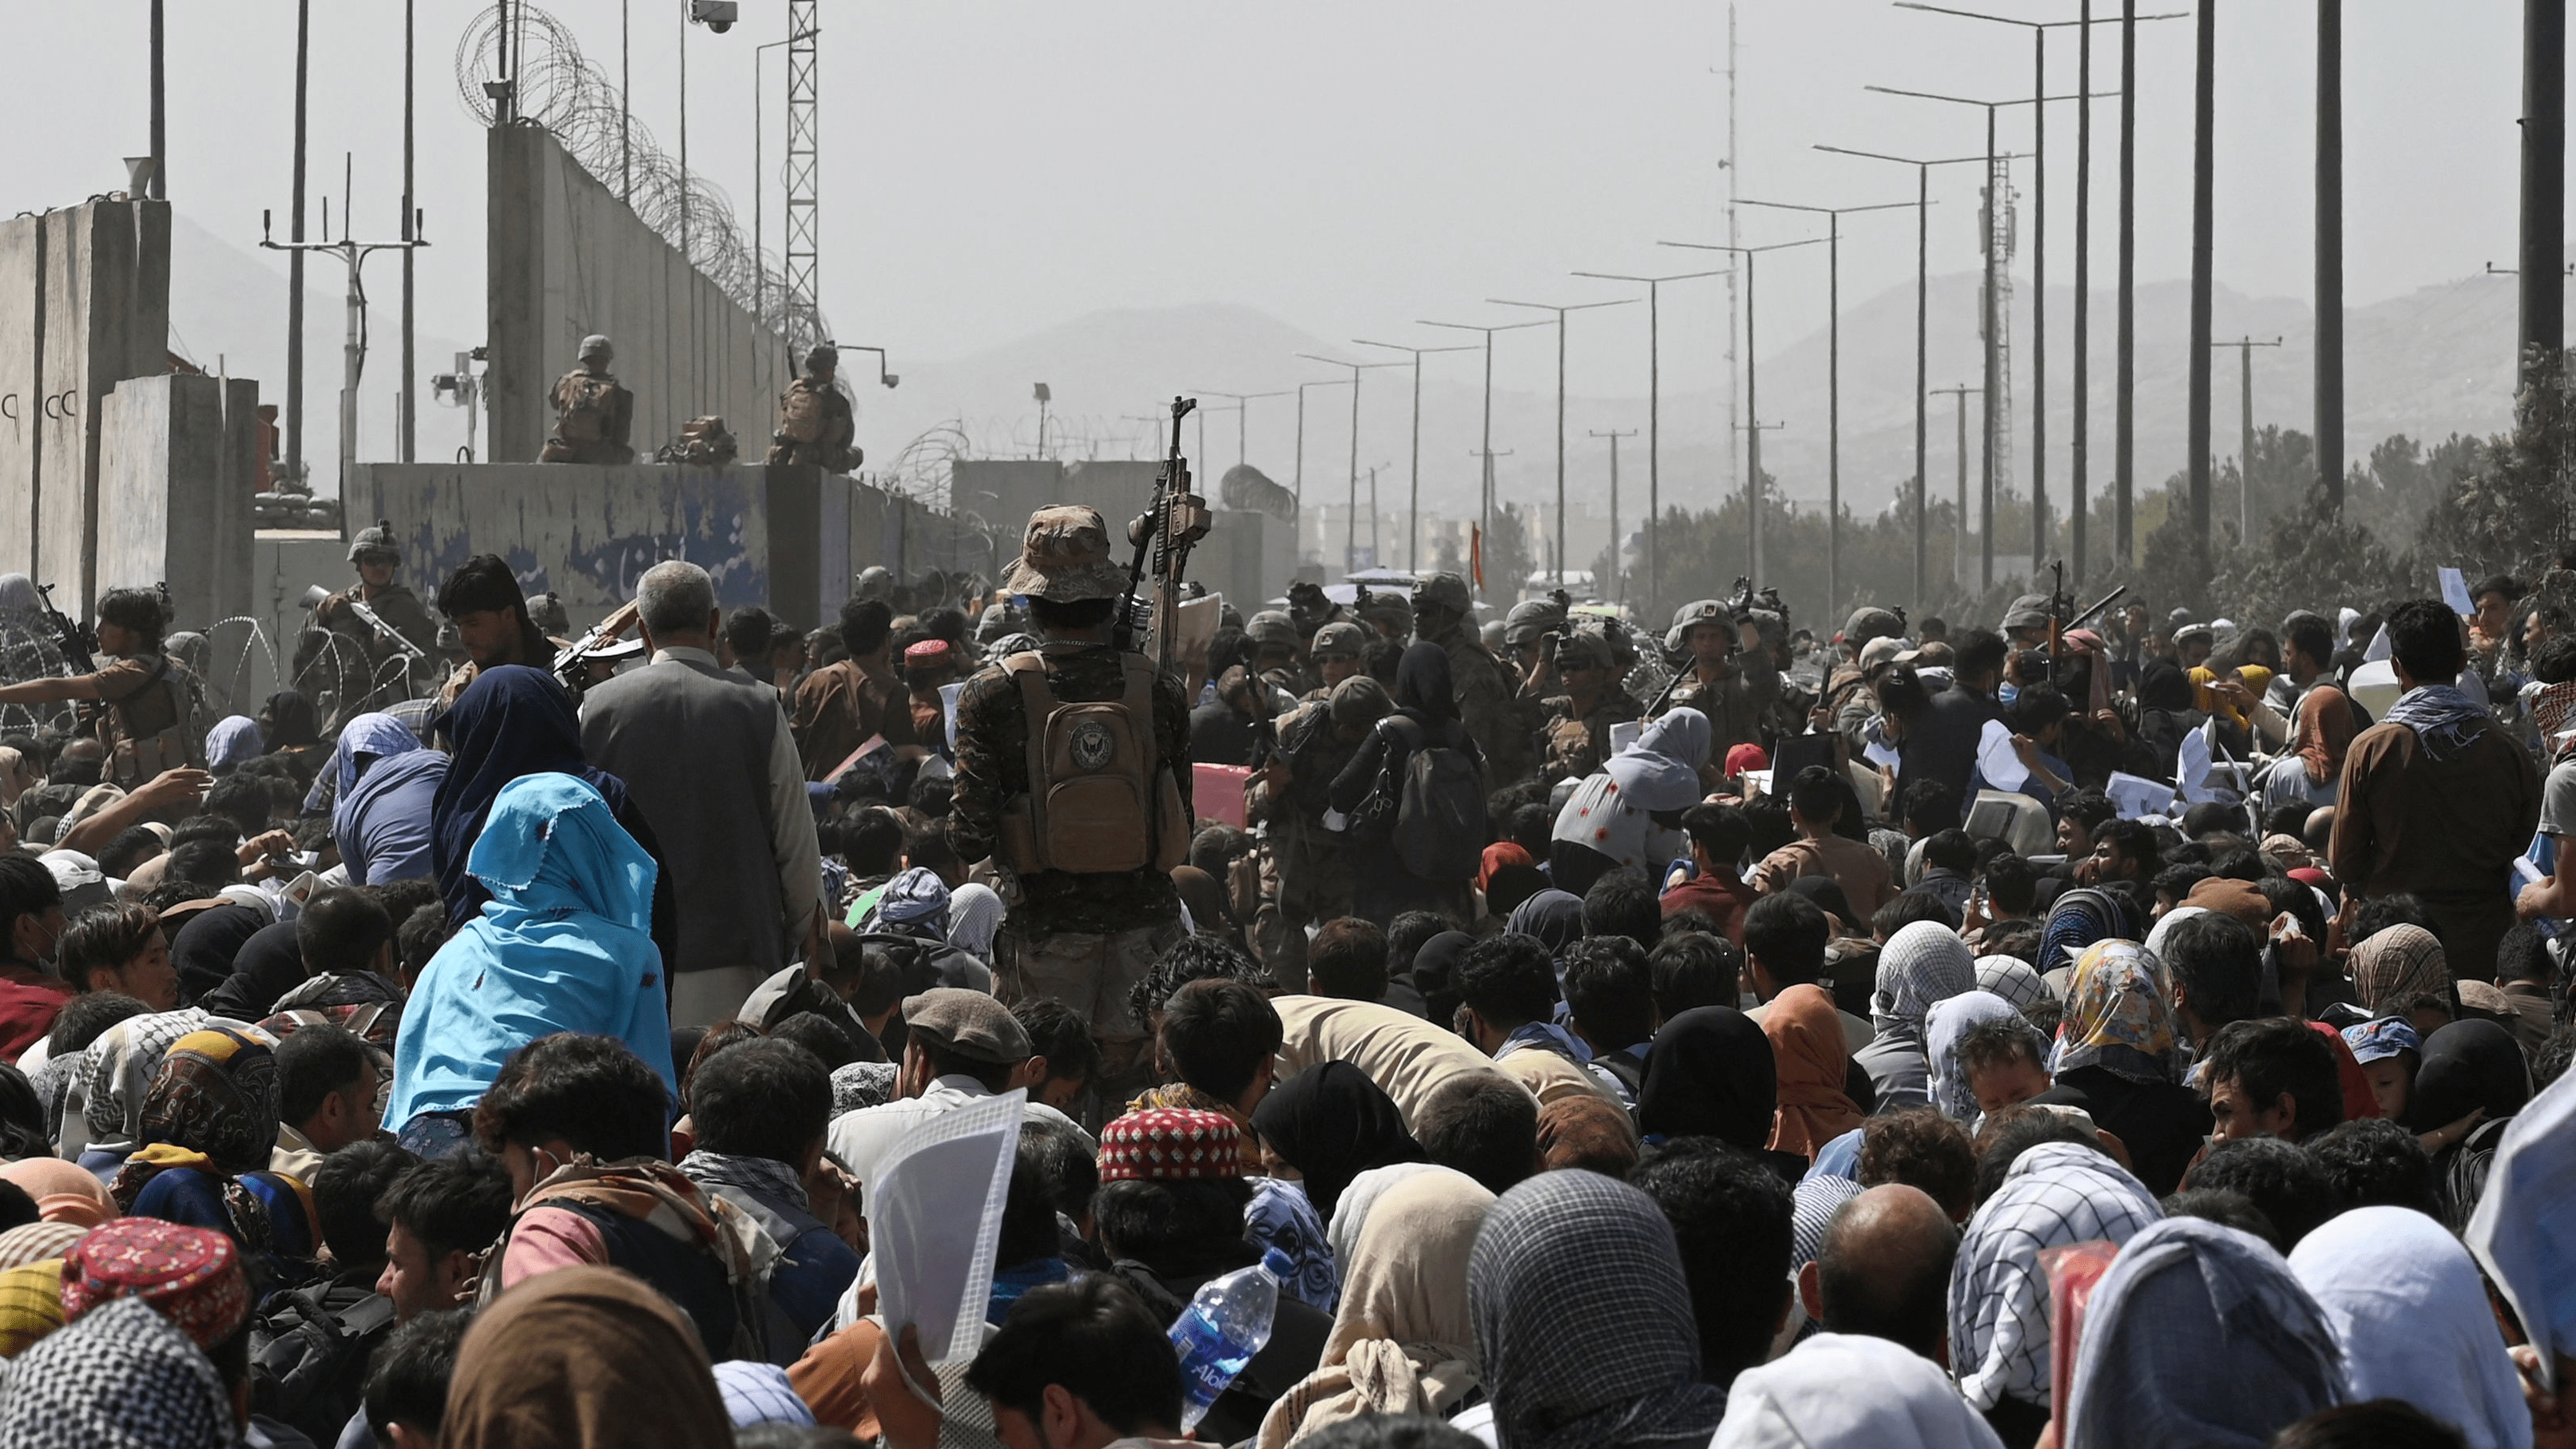 Afghans gather near the Kabul airport, hoping to flee the country. GoFundMe campaigns offer a way to help Afghans in crisis.